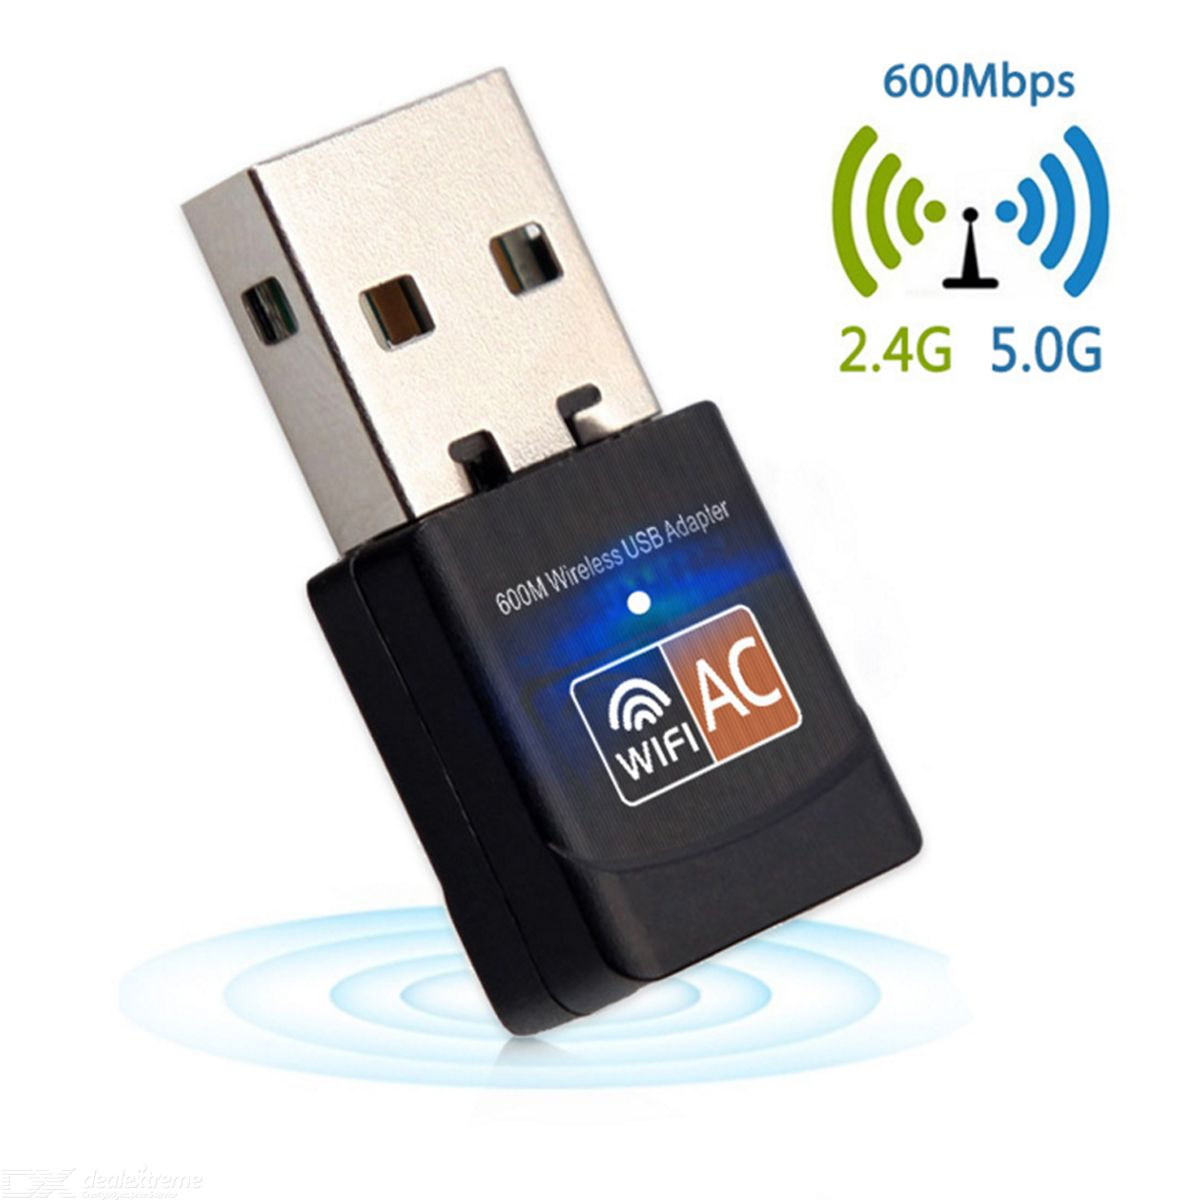 USB Wireless Adapter Card 600Mbps WiFi Mini Dongle for Laptop LAN Network 2.4G